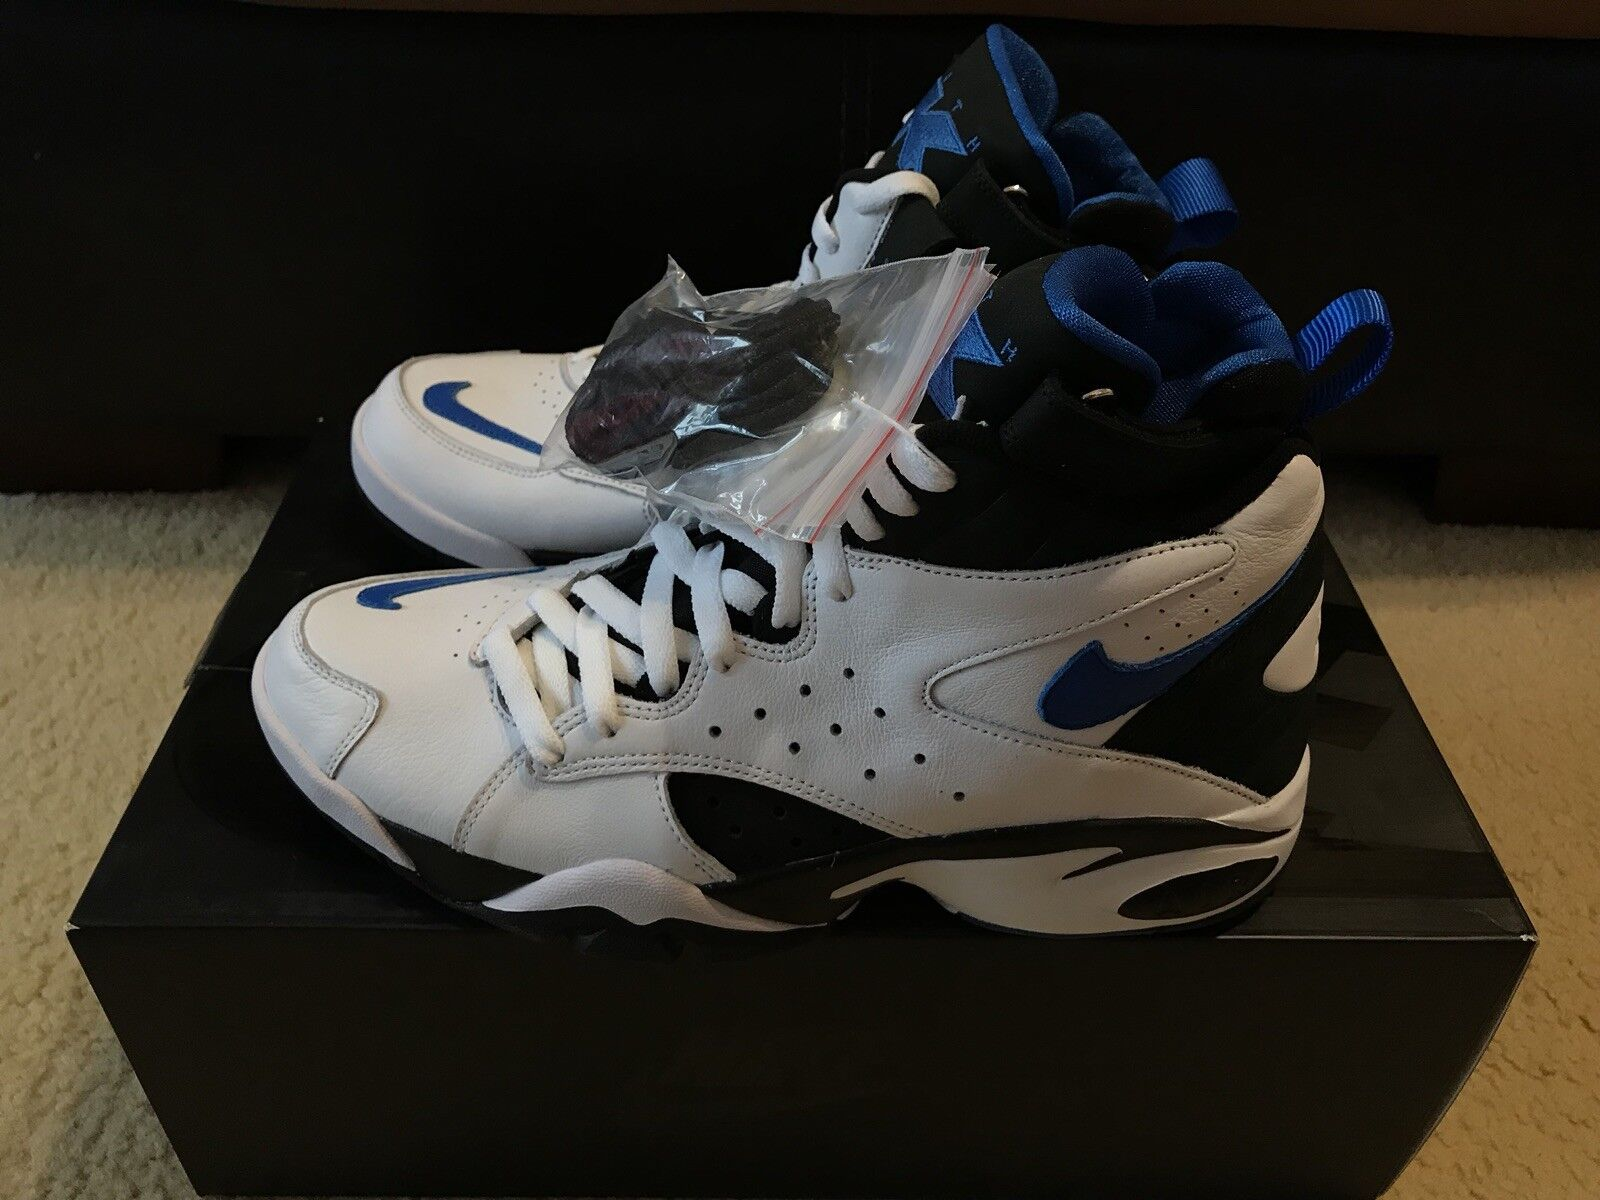 Nike Air Maestro II QS Kith Men's sz 10 White Regal bluee Black AH1069-101 NIB